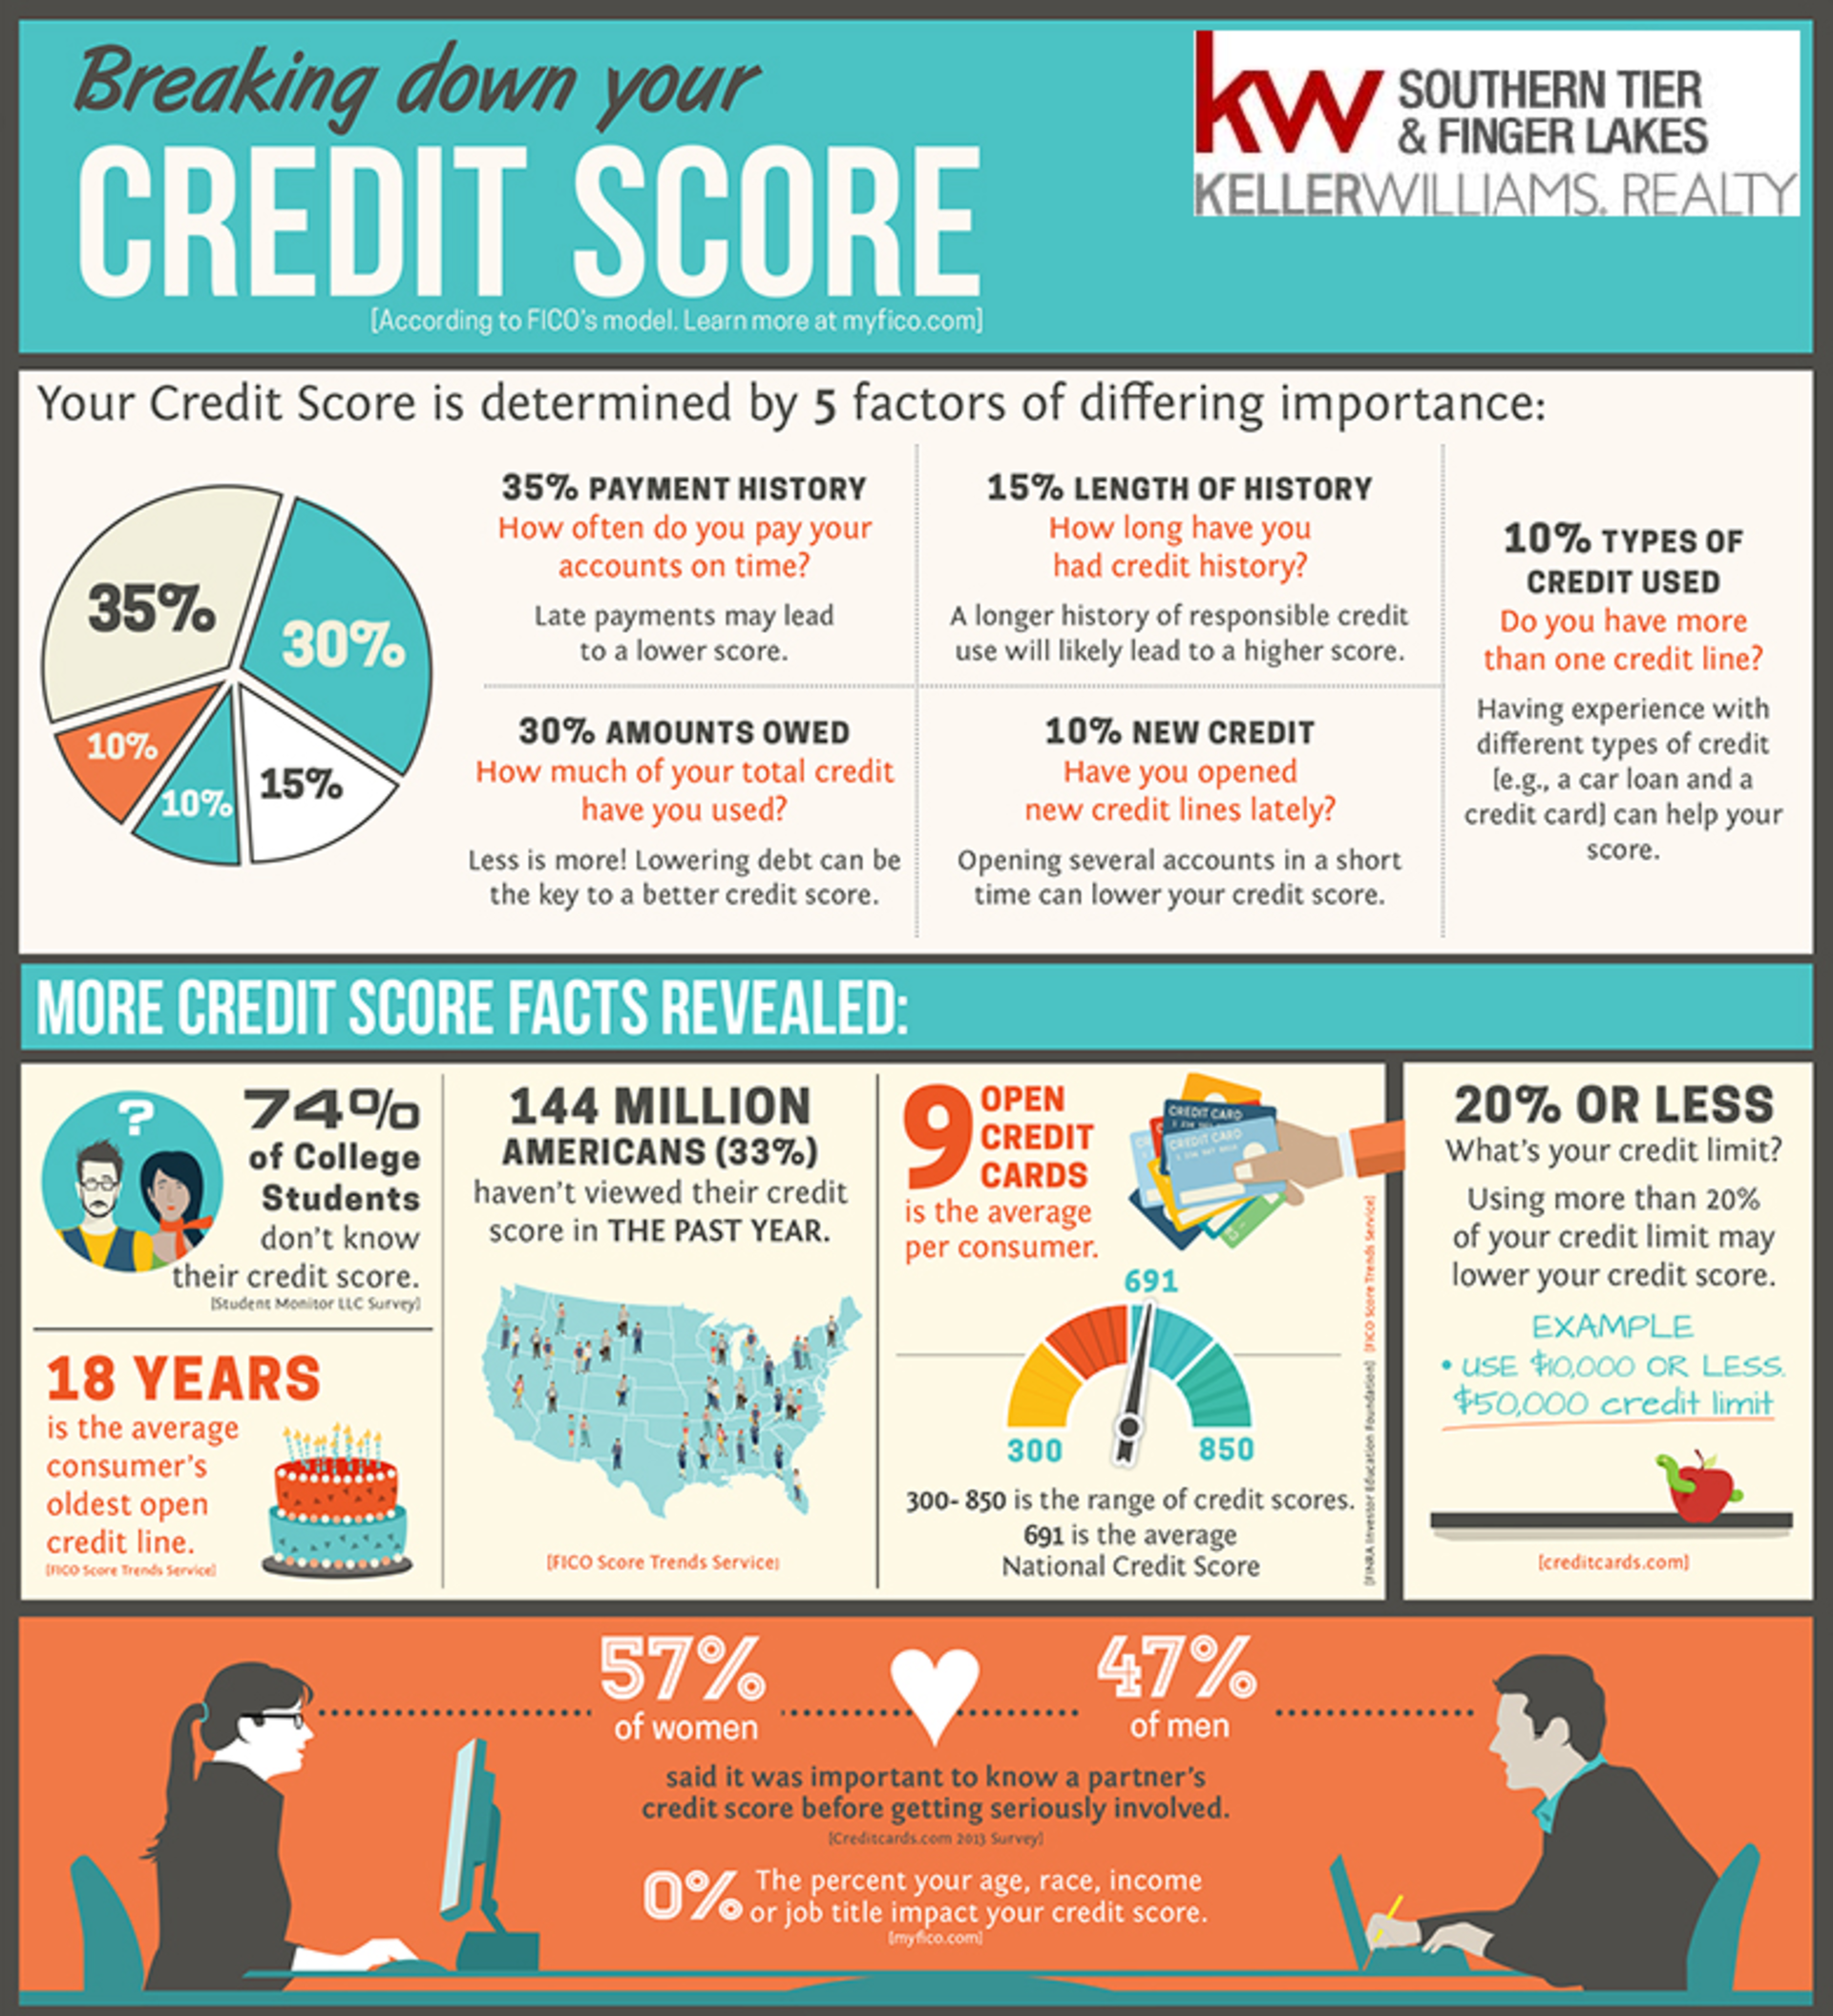 Break Down Your Credit Score!